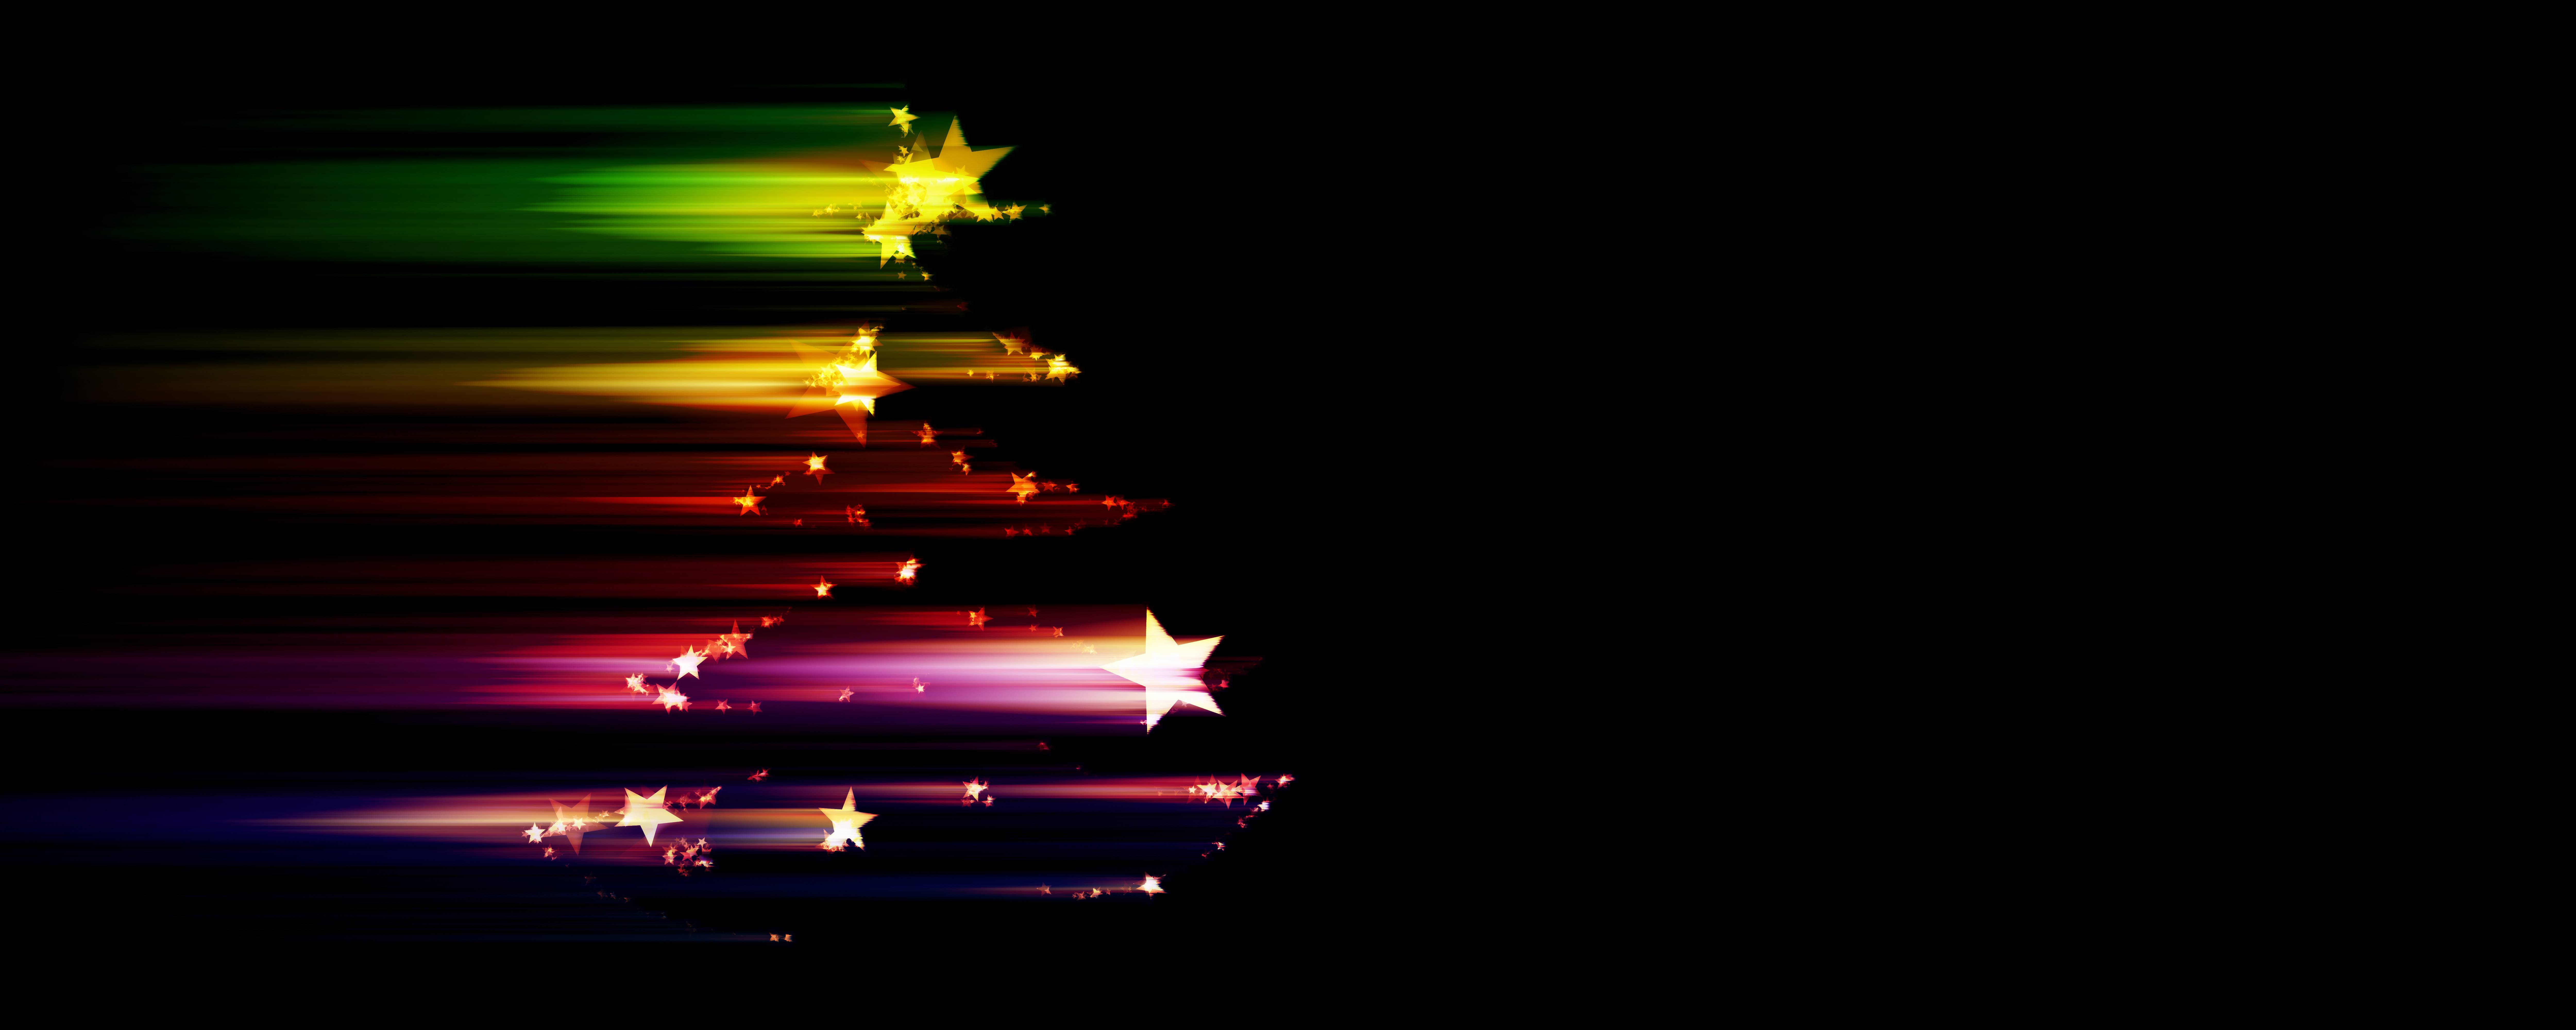 Colorful star , holiday, decoration, black